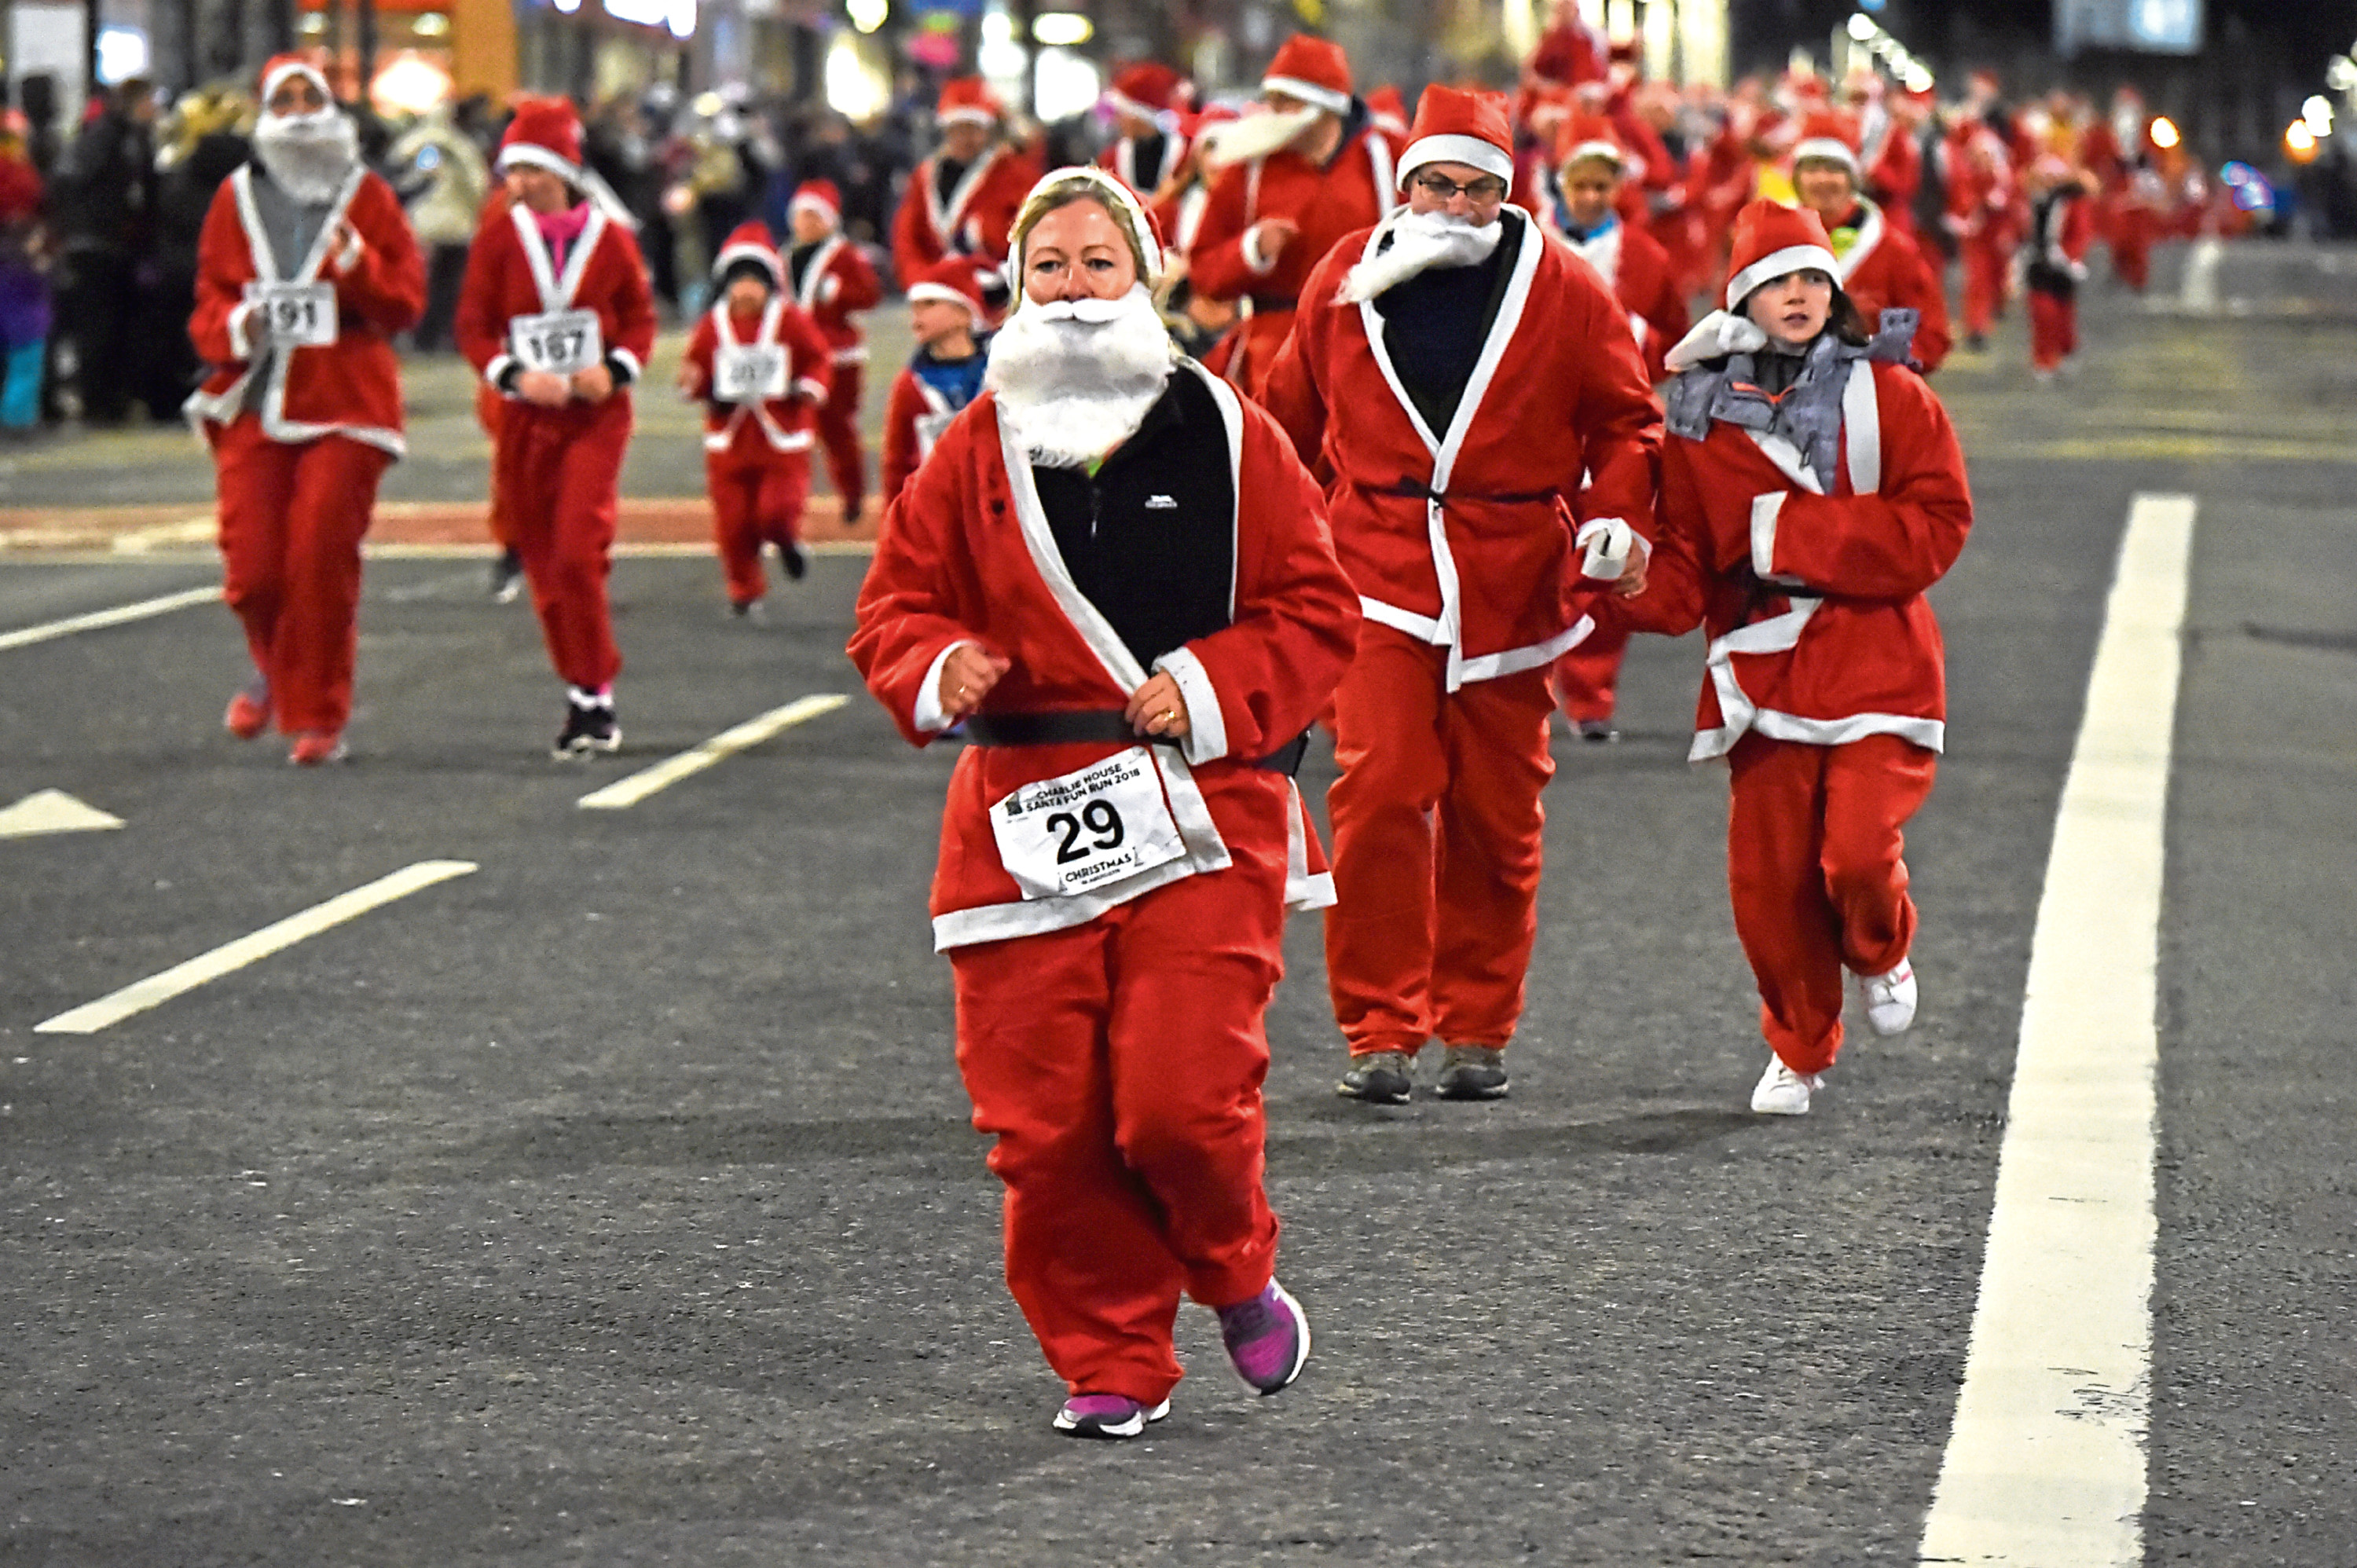 The annual Santa run will take place on November 24.